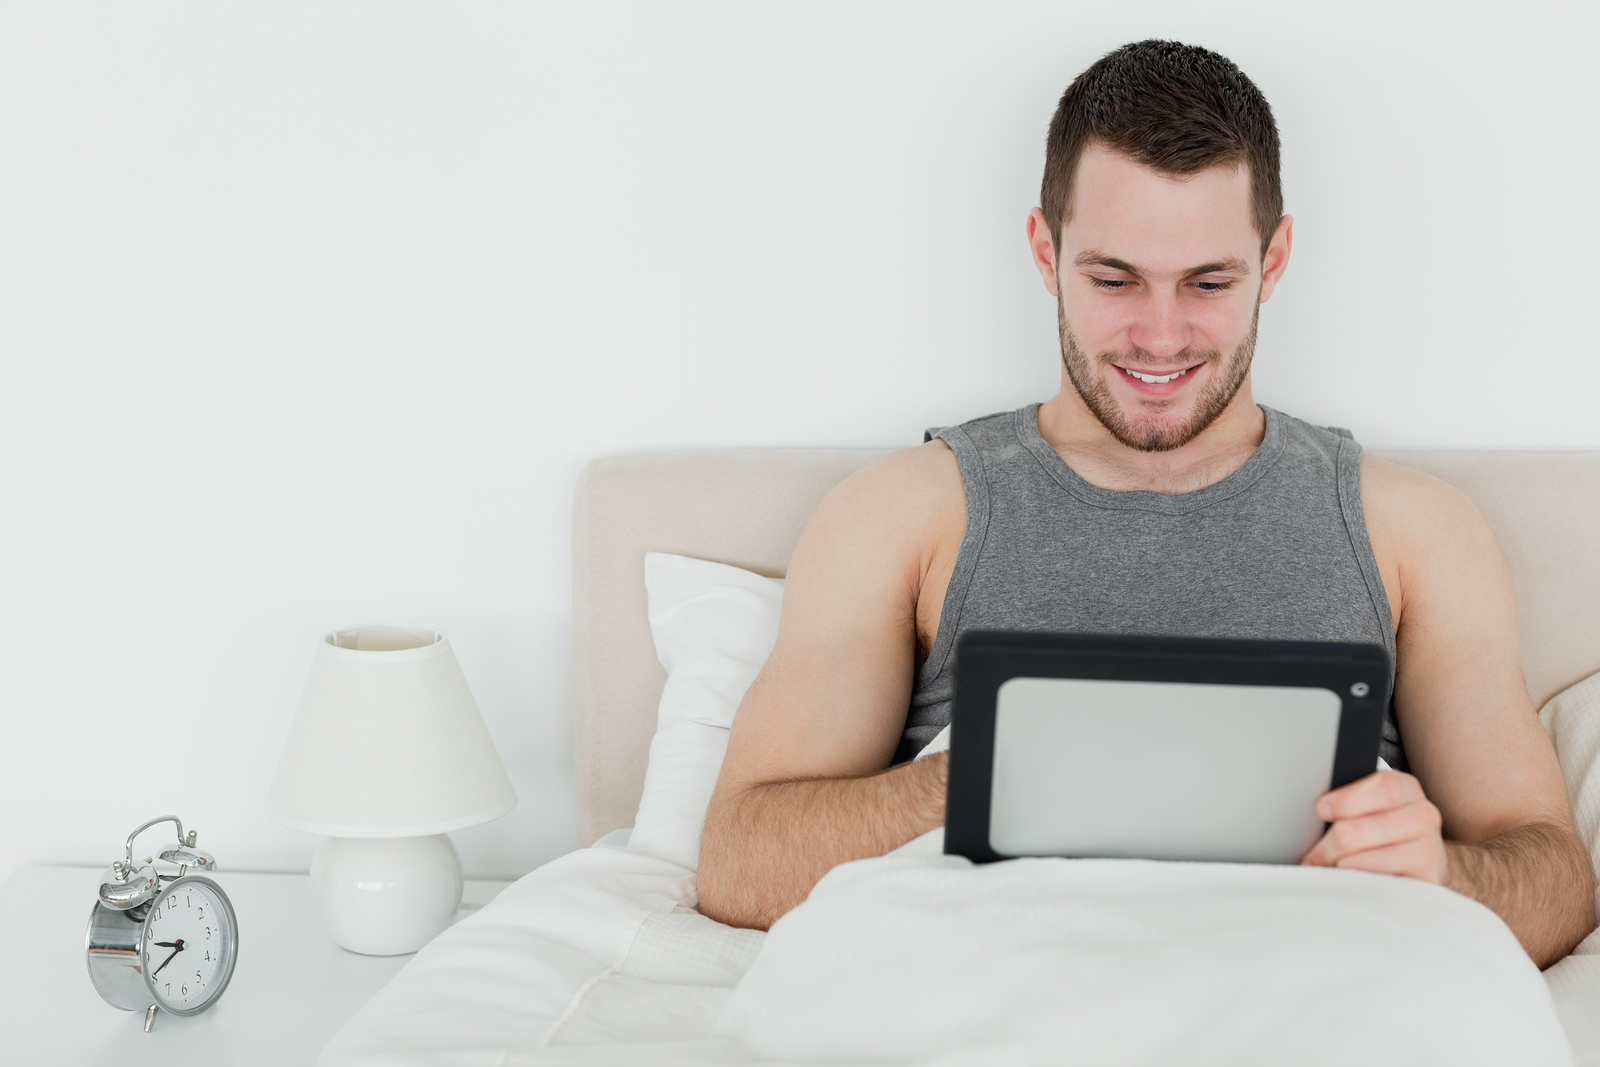 A new study suggests that the use of electronics may contribute to lower sperm counts in men.